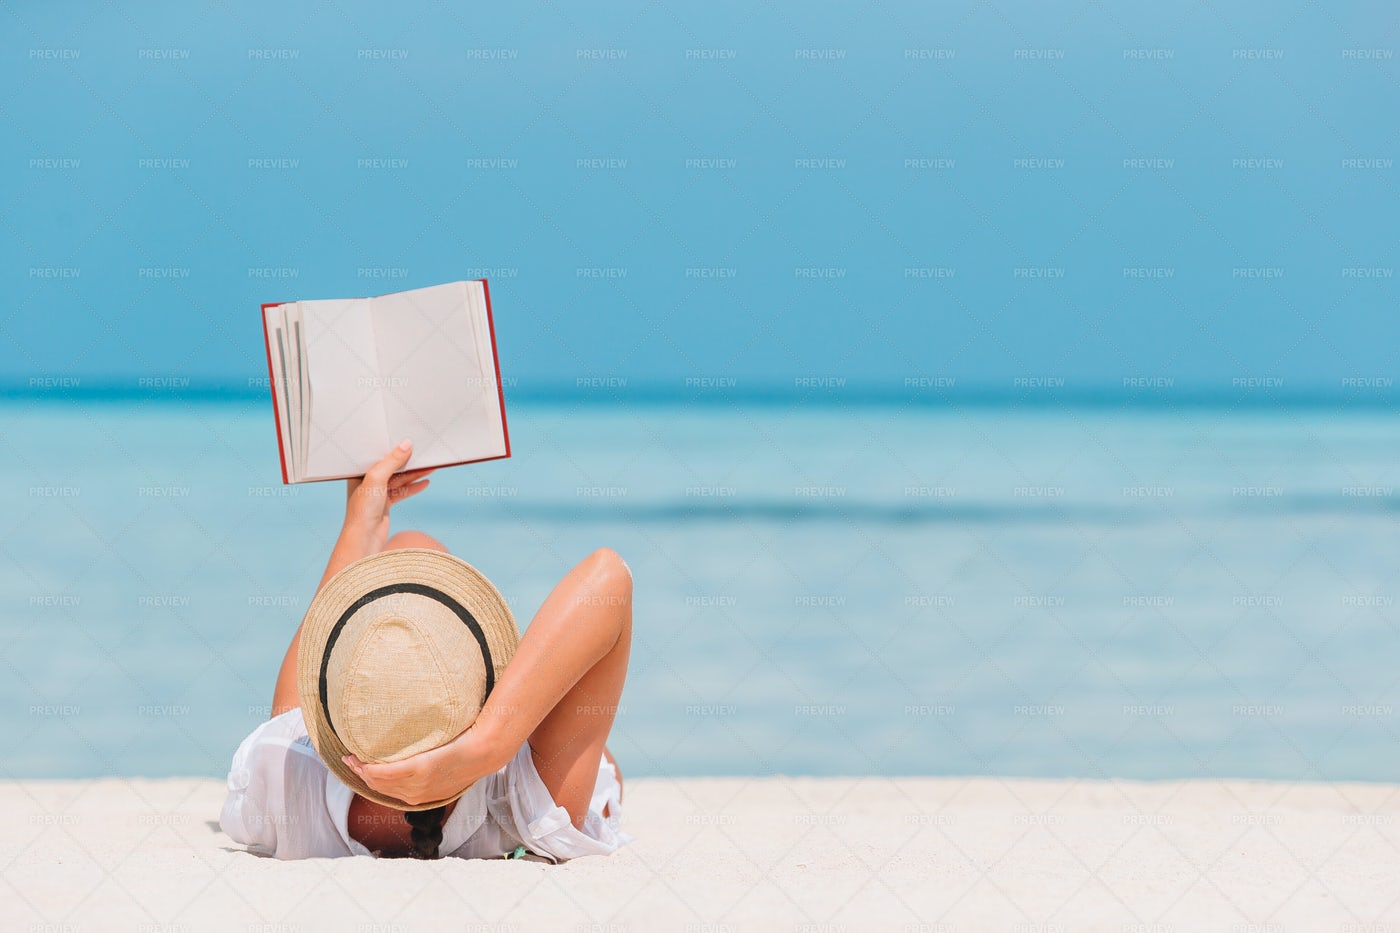 Reads Book By The Shore: Stock Photos